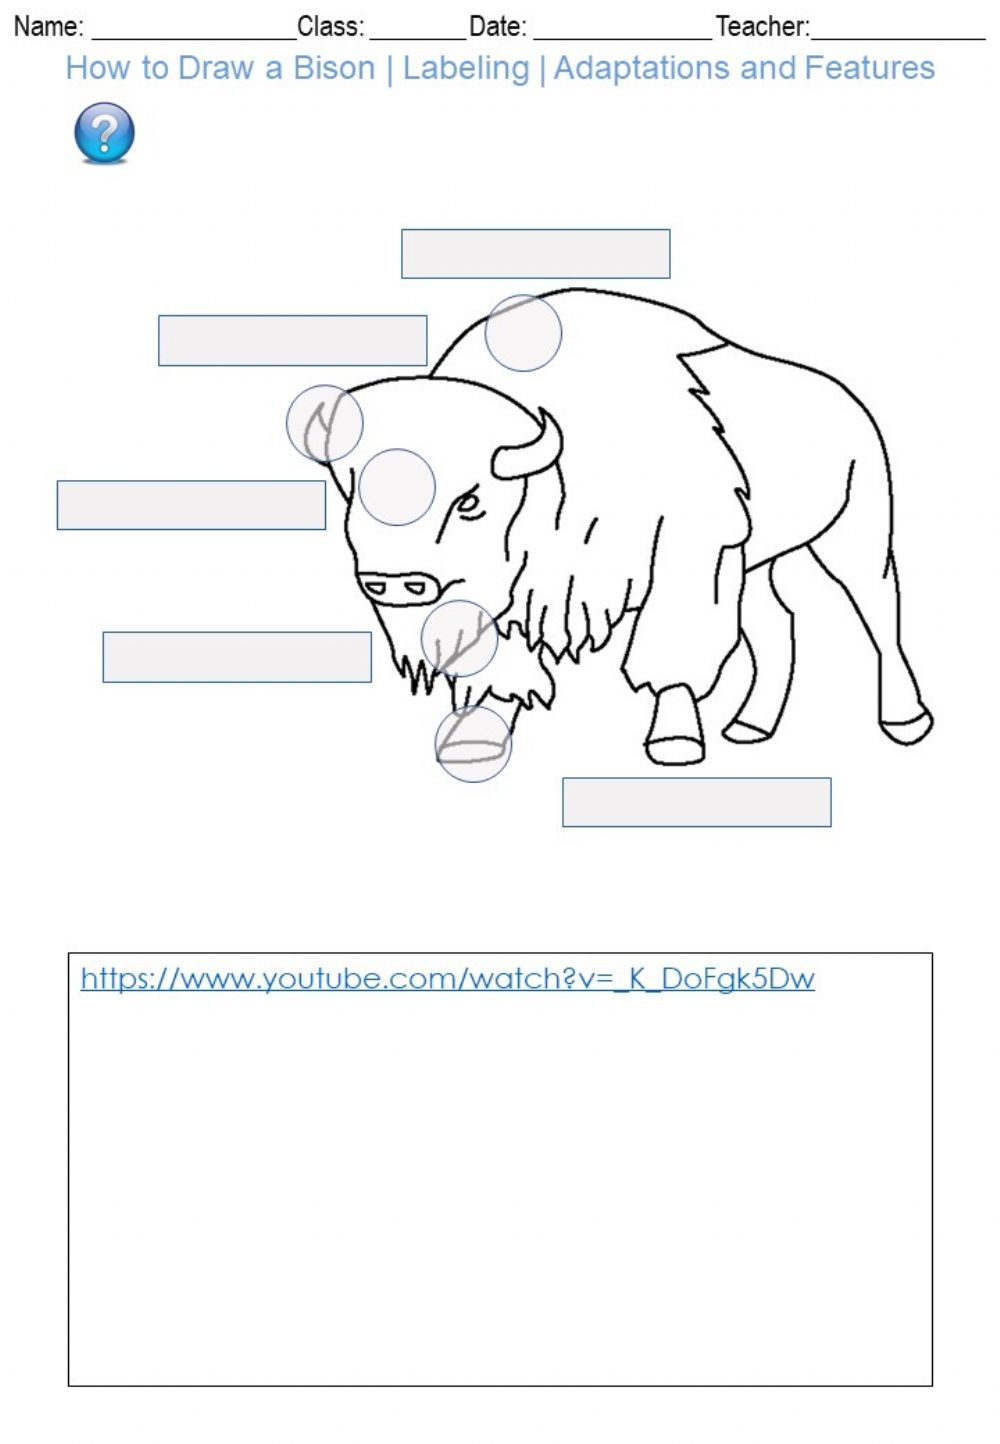 medium resolution of How to Draw a Bison - Labeling - Adaptations and Features worksheet